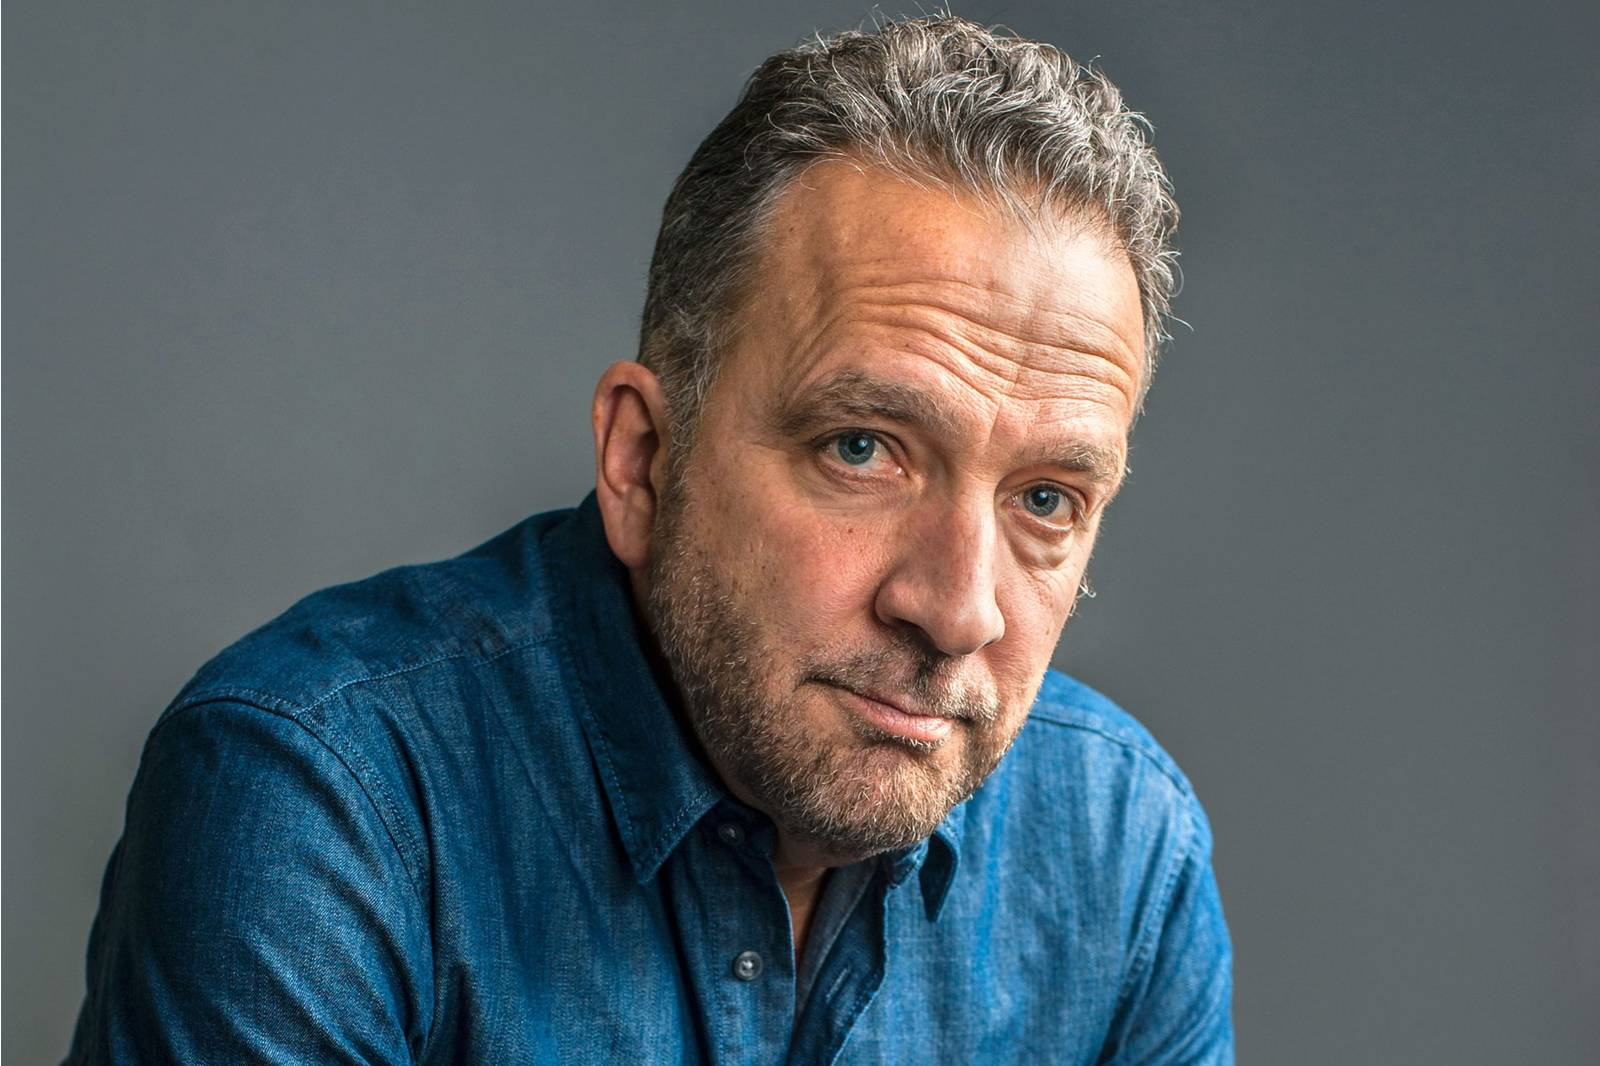 Our Podcast Episode #9 guest, novelist and HBO Producer George Pelecanos